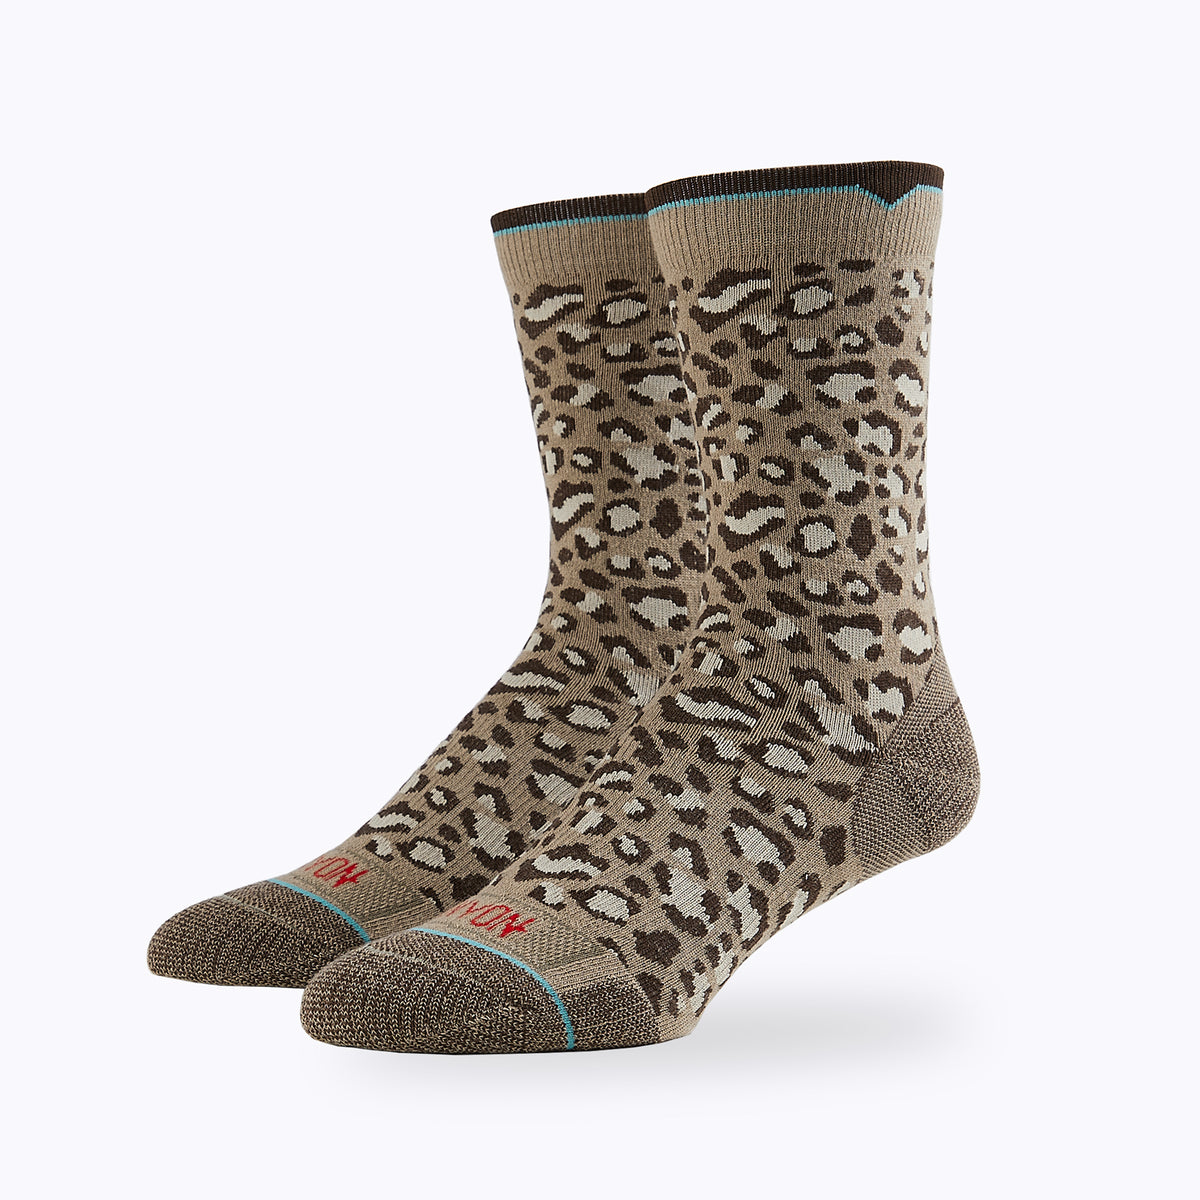 Leopard 2 Pack Mix Women's Crew Socks -  by Canyon Socks